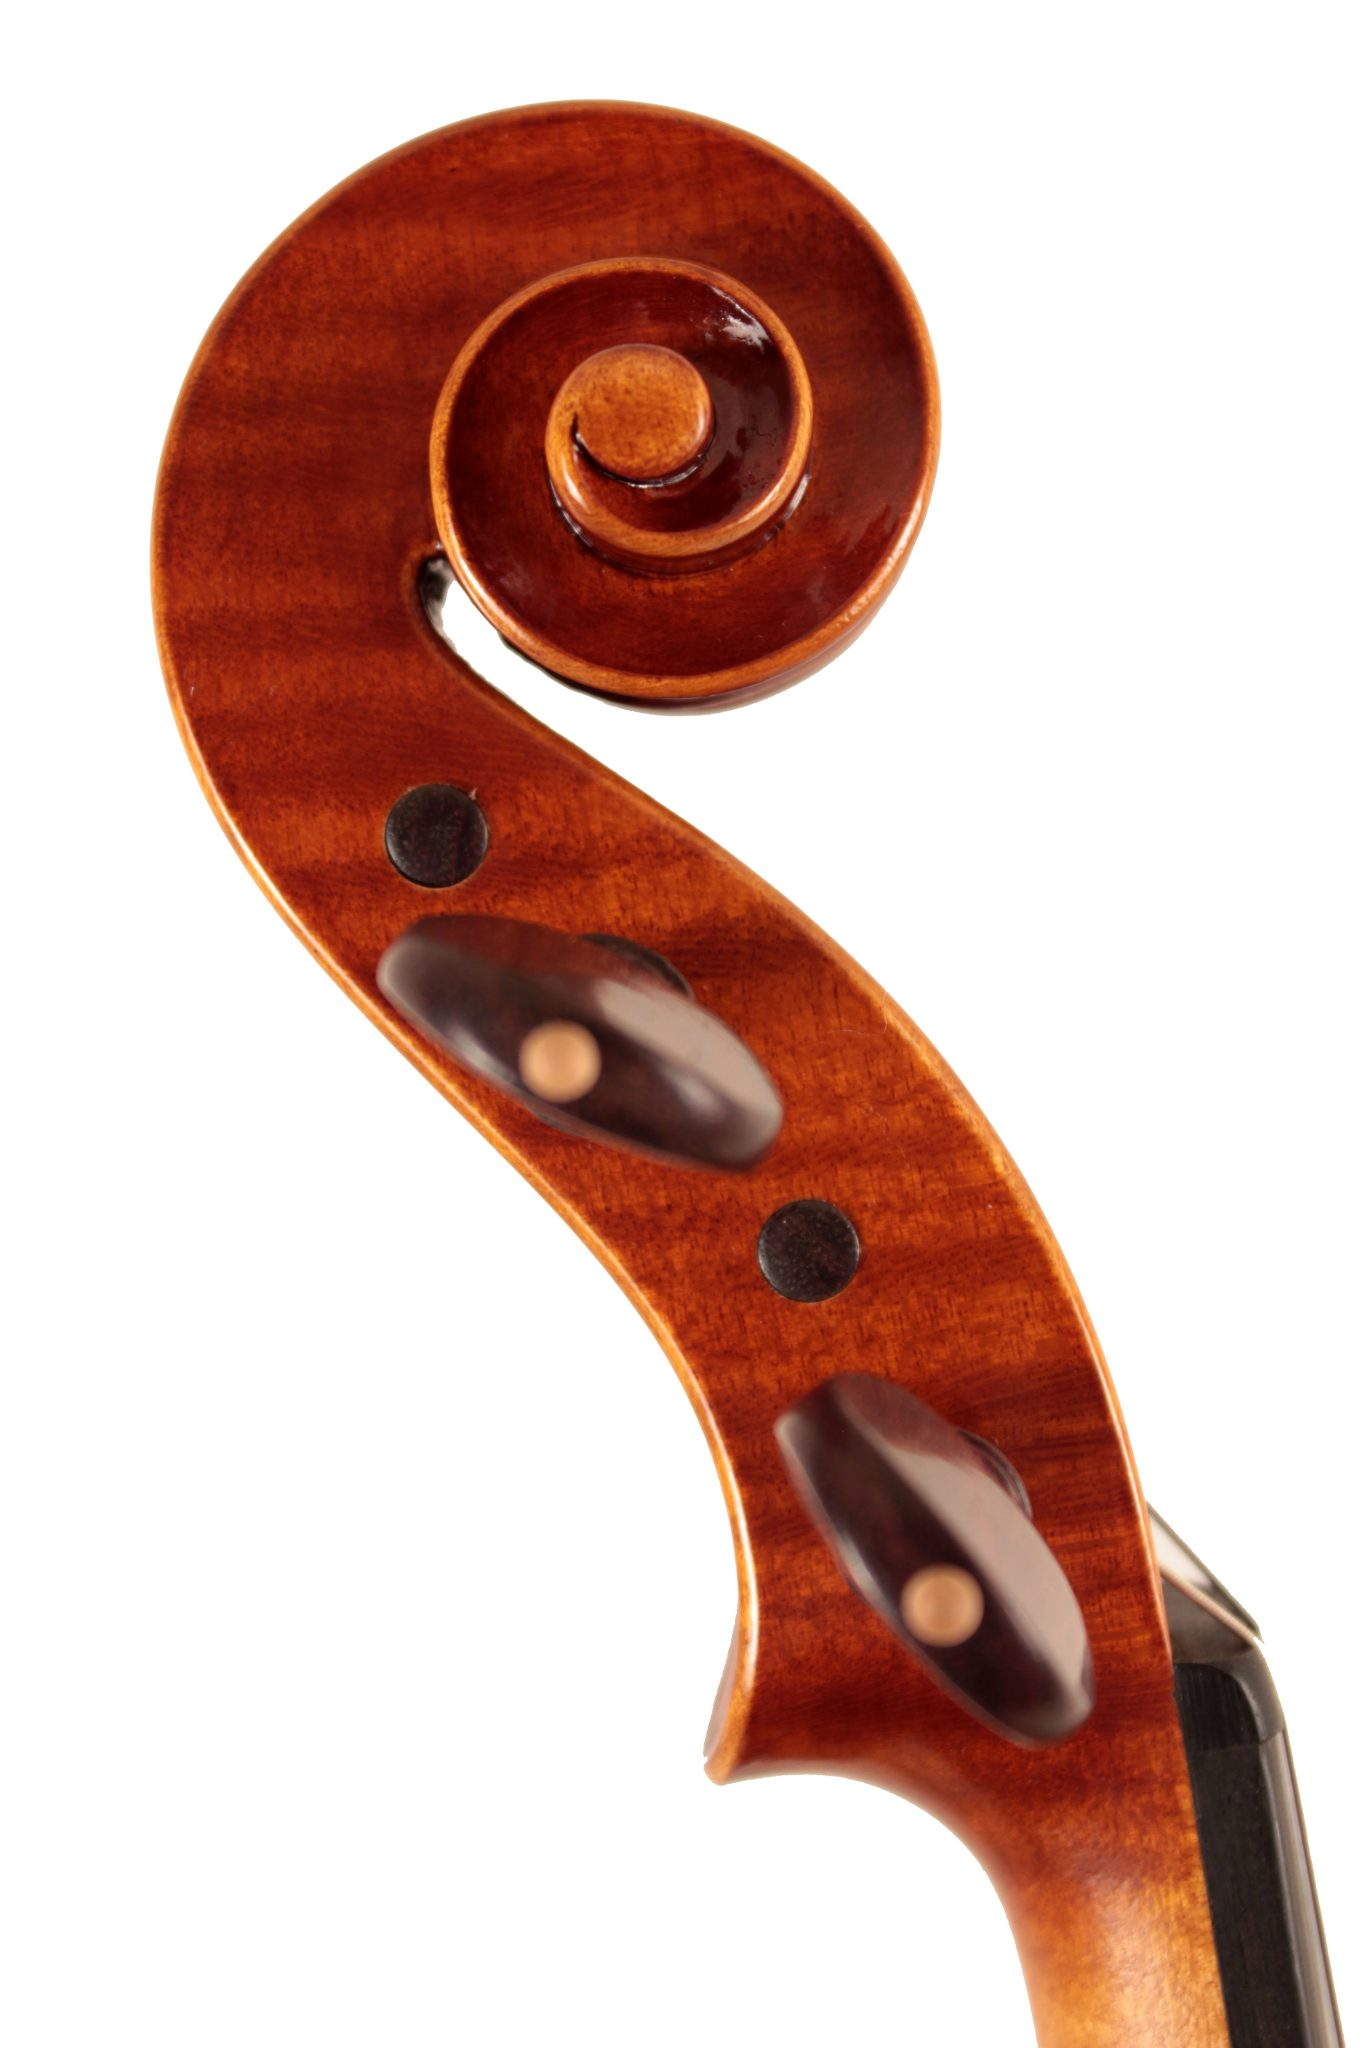 Violin by Federico Falaschi, Perugia 2014 for sale at Bridgewood and Neitzert London